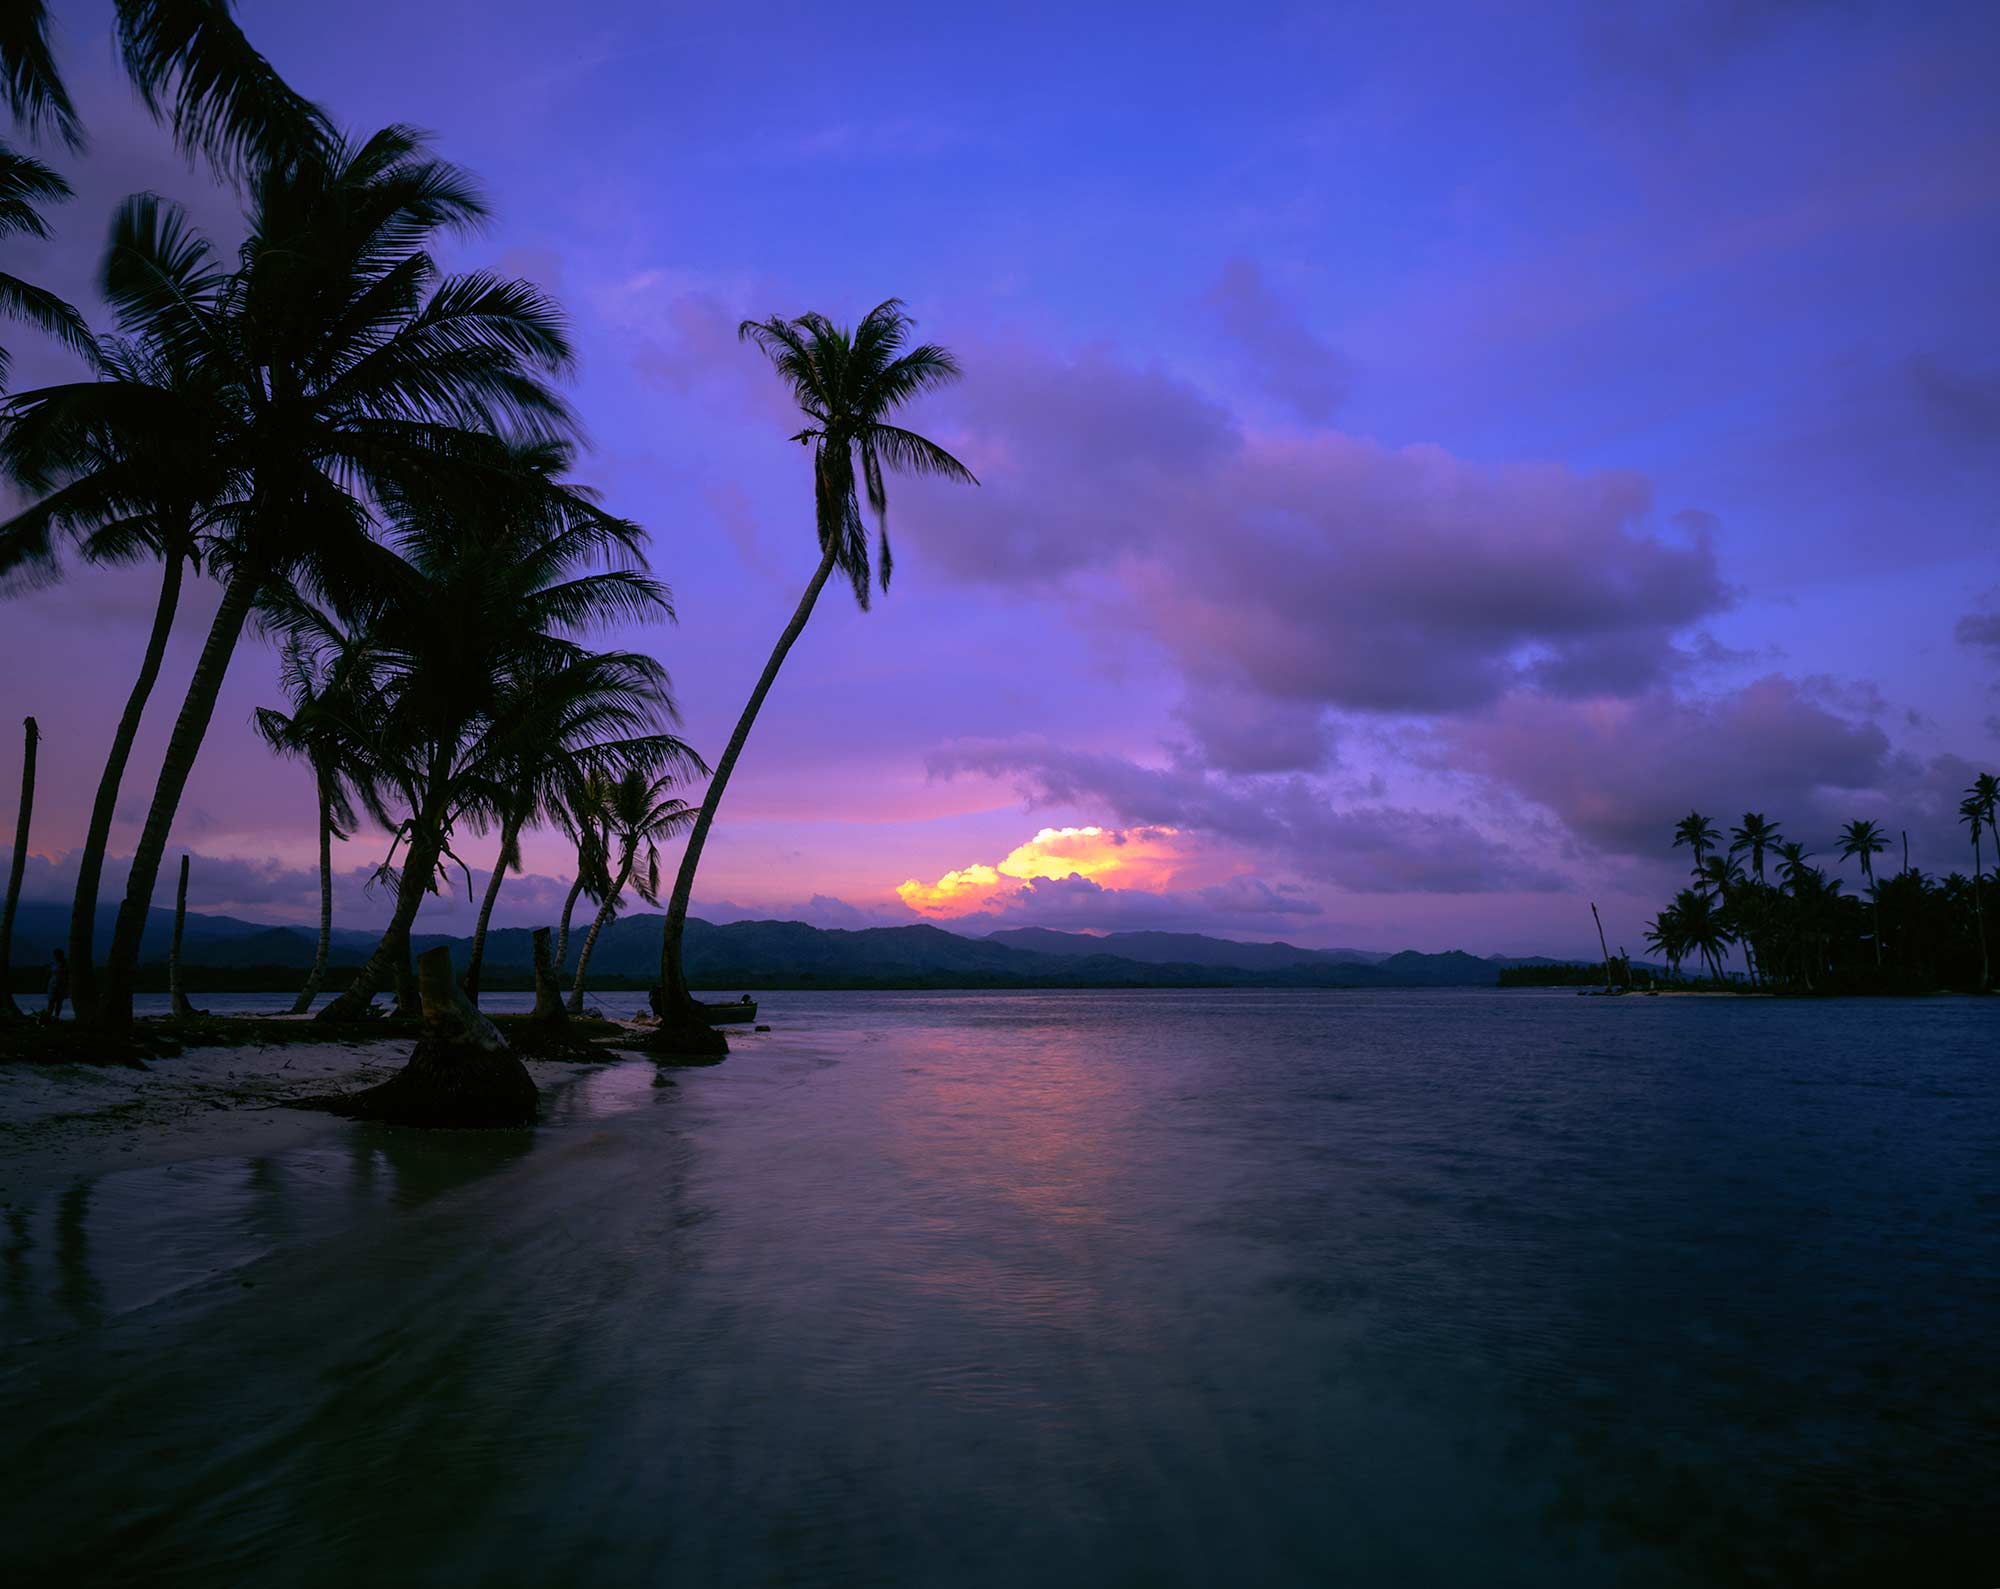 Scene of the San Blas Islands at Sunset